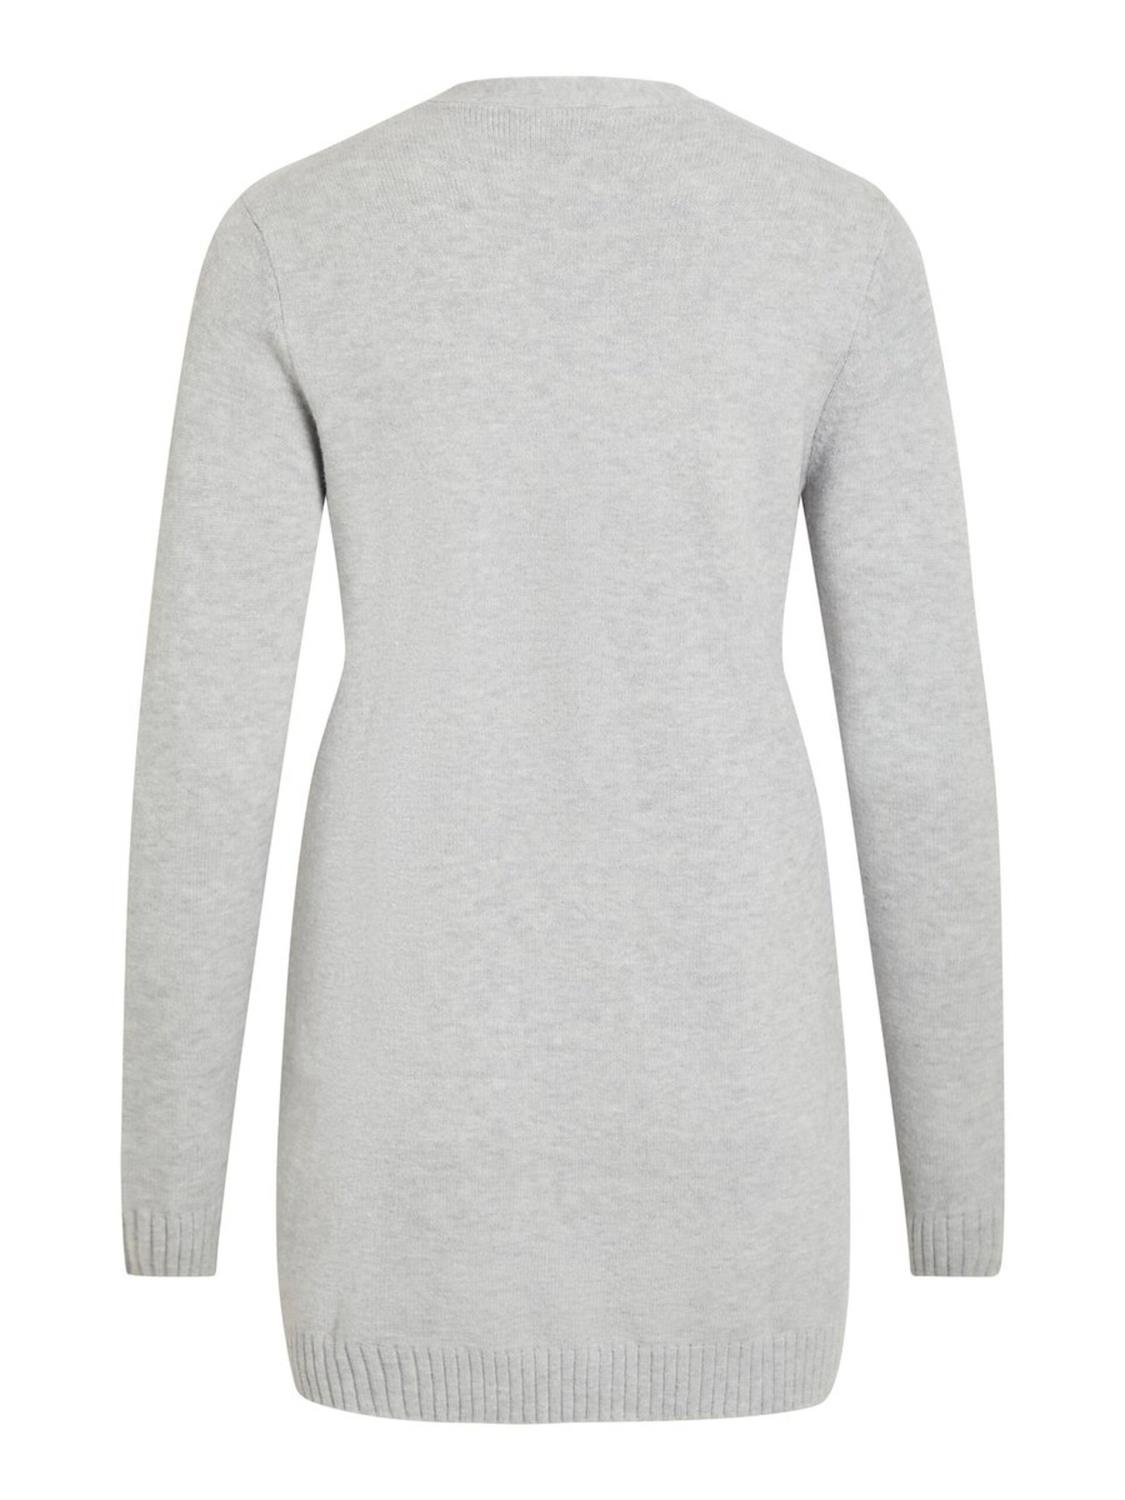 gallery-260-for-14011041-light grey